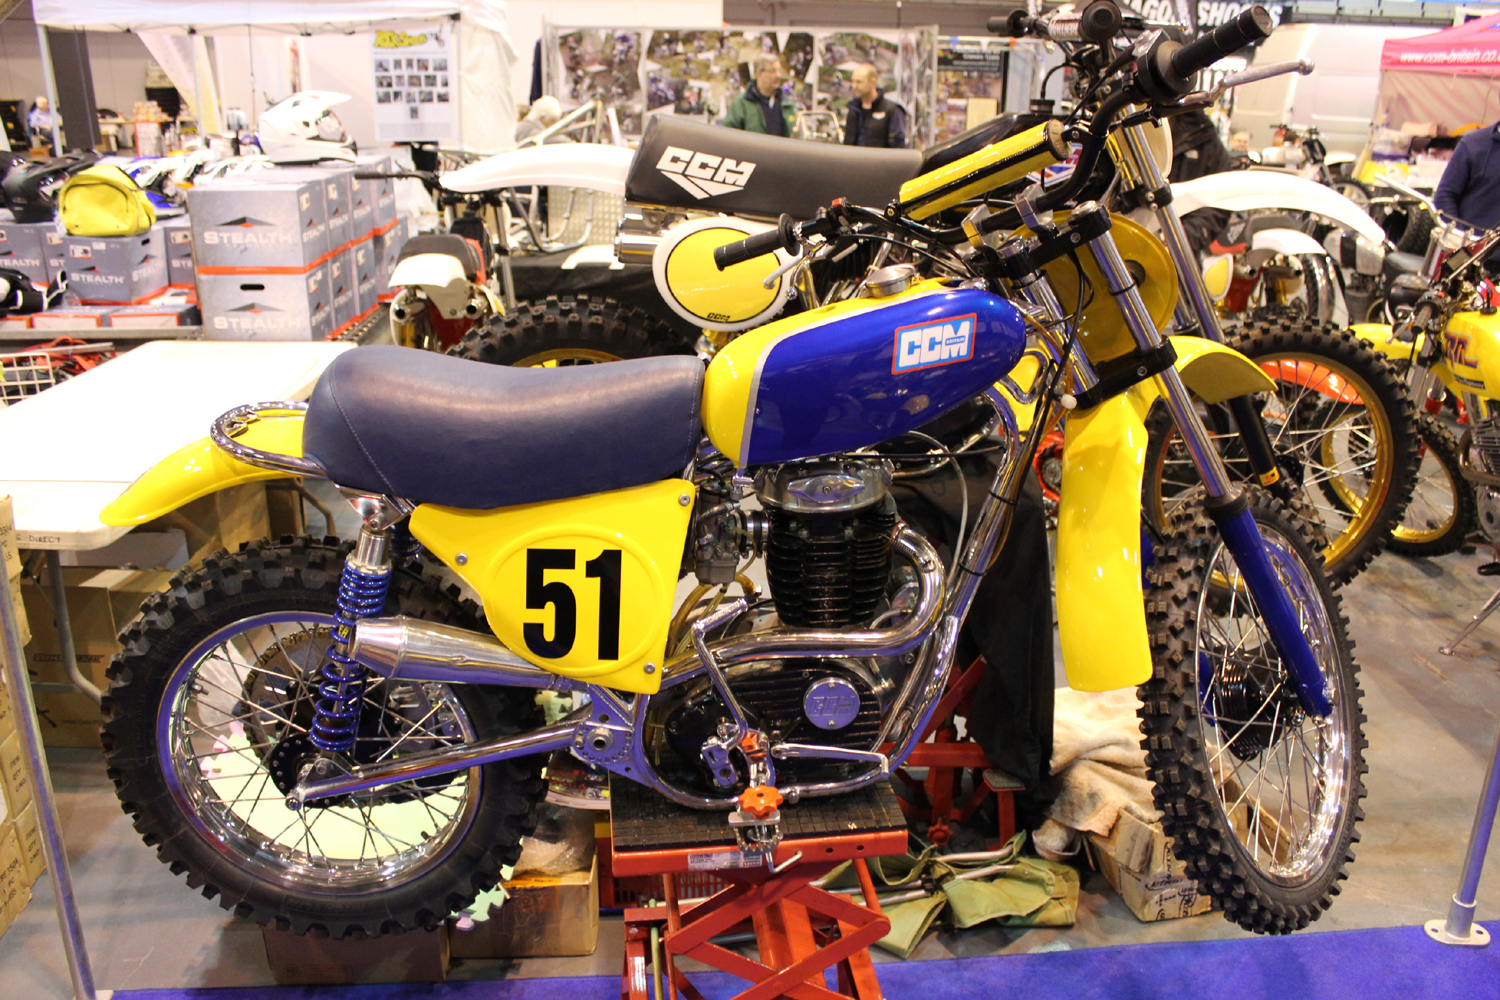 classicdirtbikerider.com-photo by Mr J-2015 Telford classic dirt bike show-CLASSIC CCM MOTOCROSS BIKE